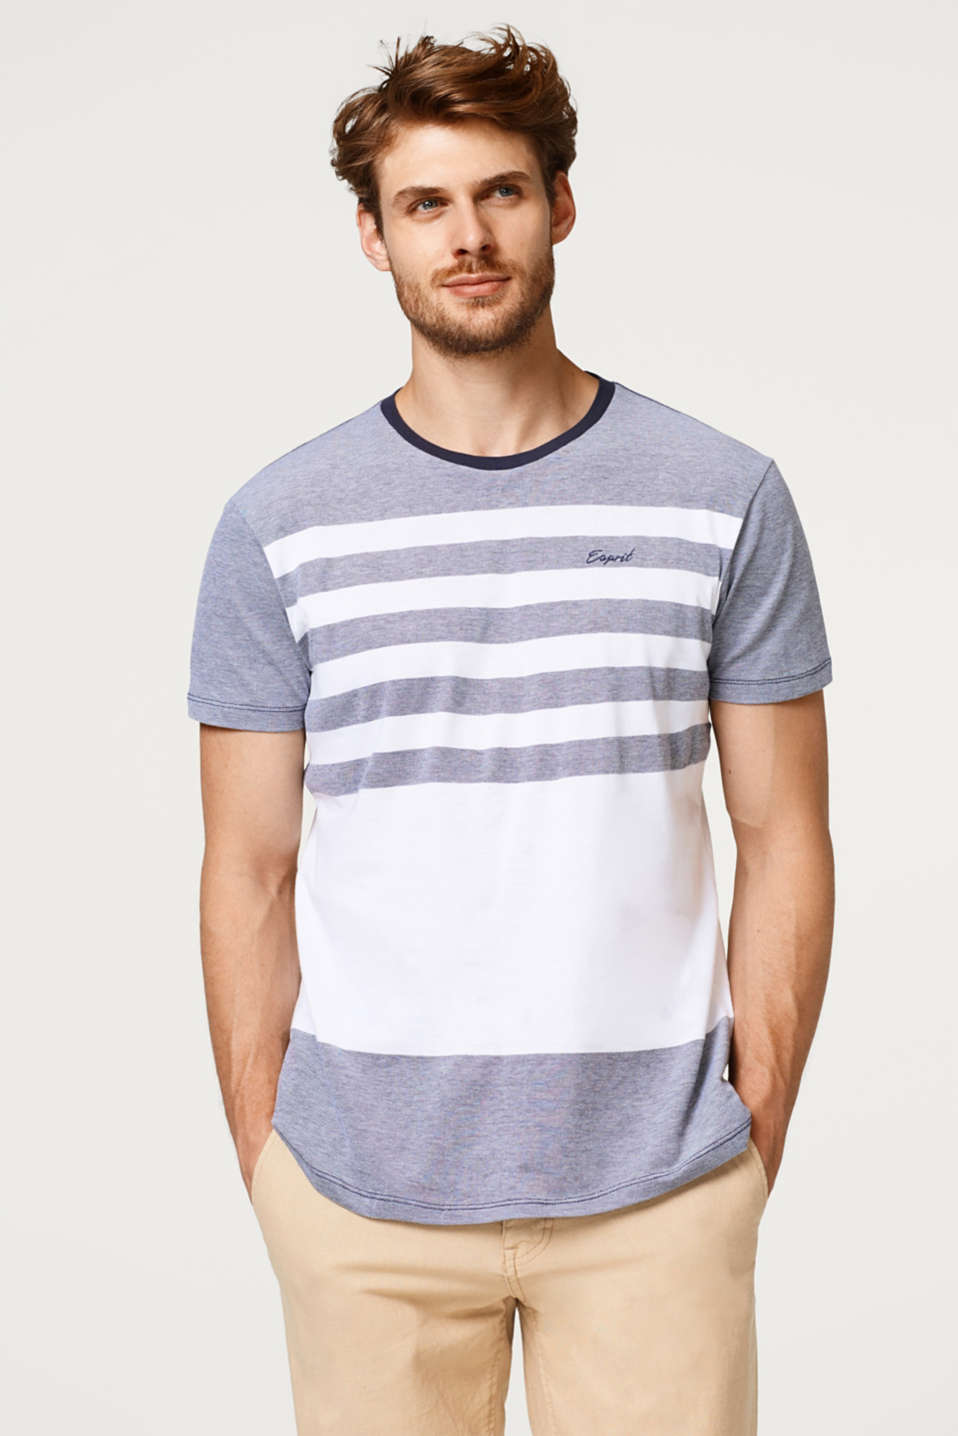 Esprit - Mixed texture cotton-jersey T-shirt